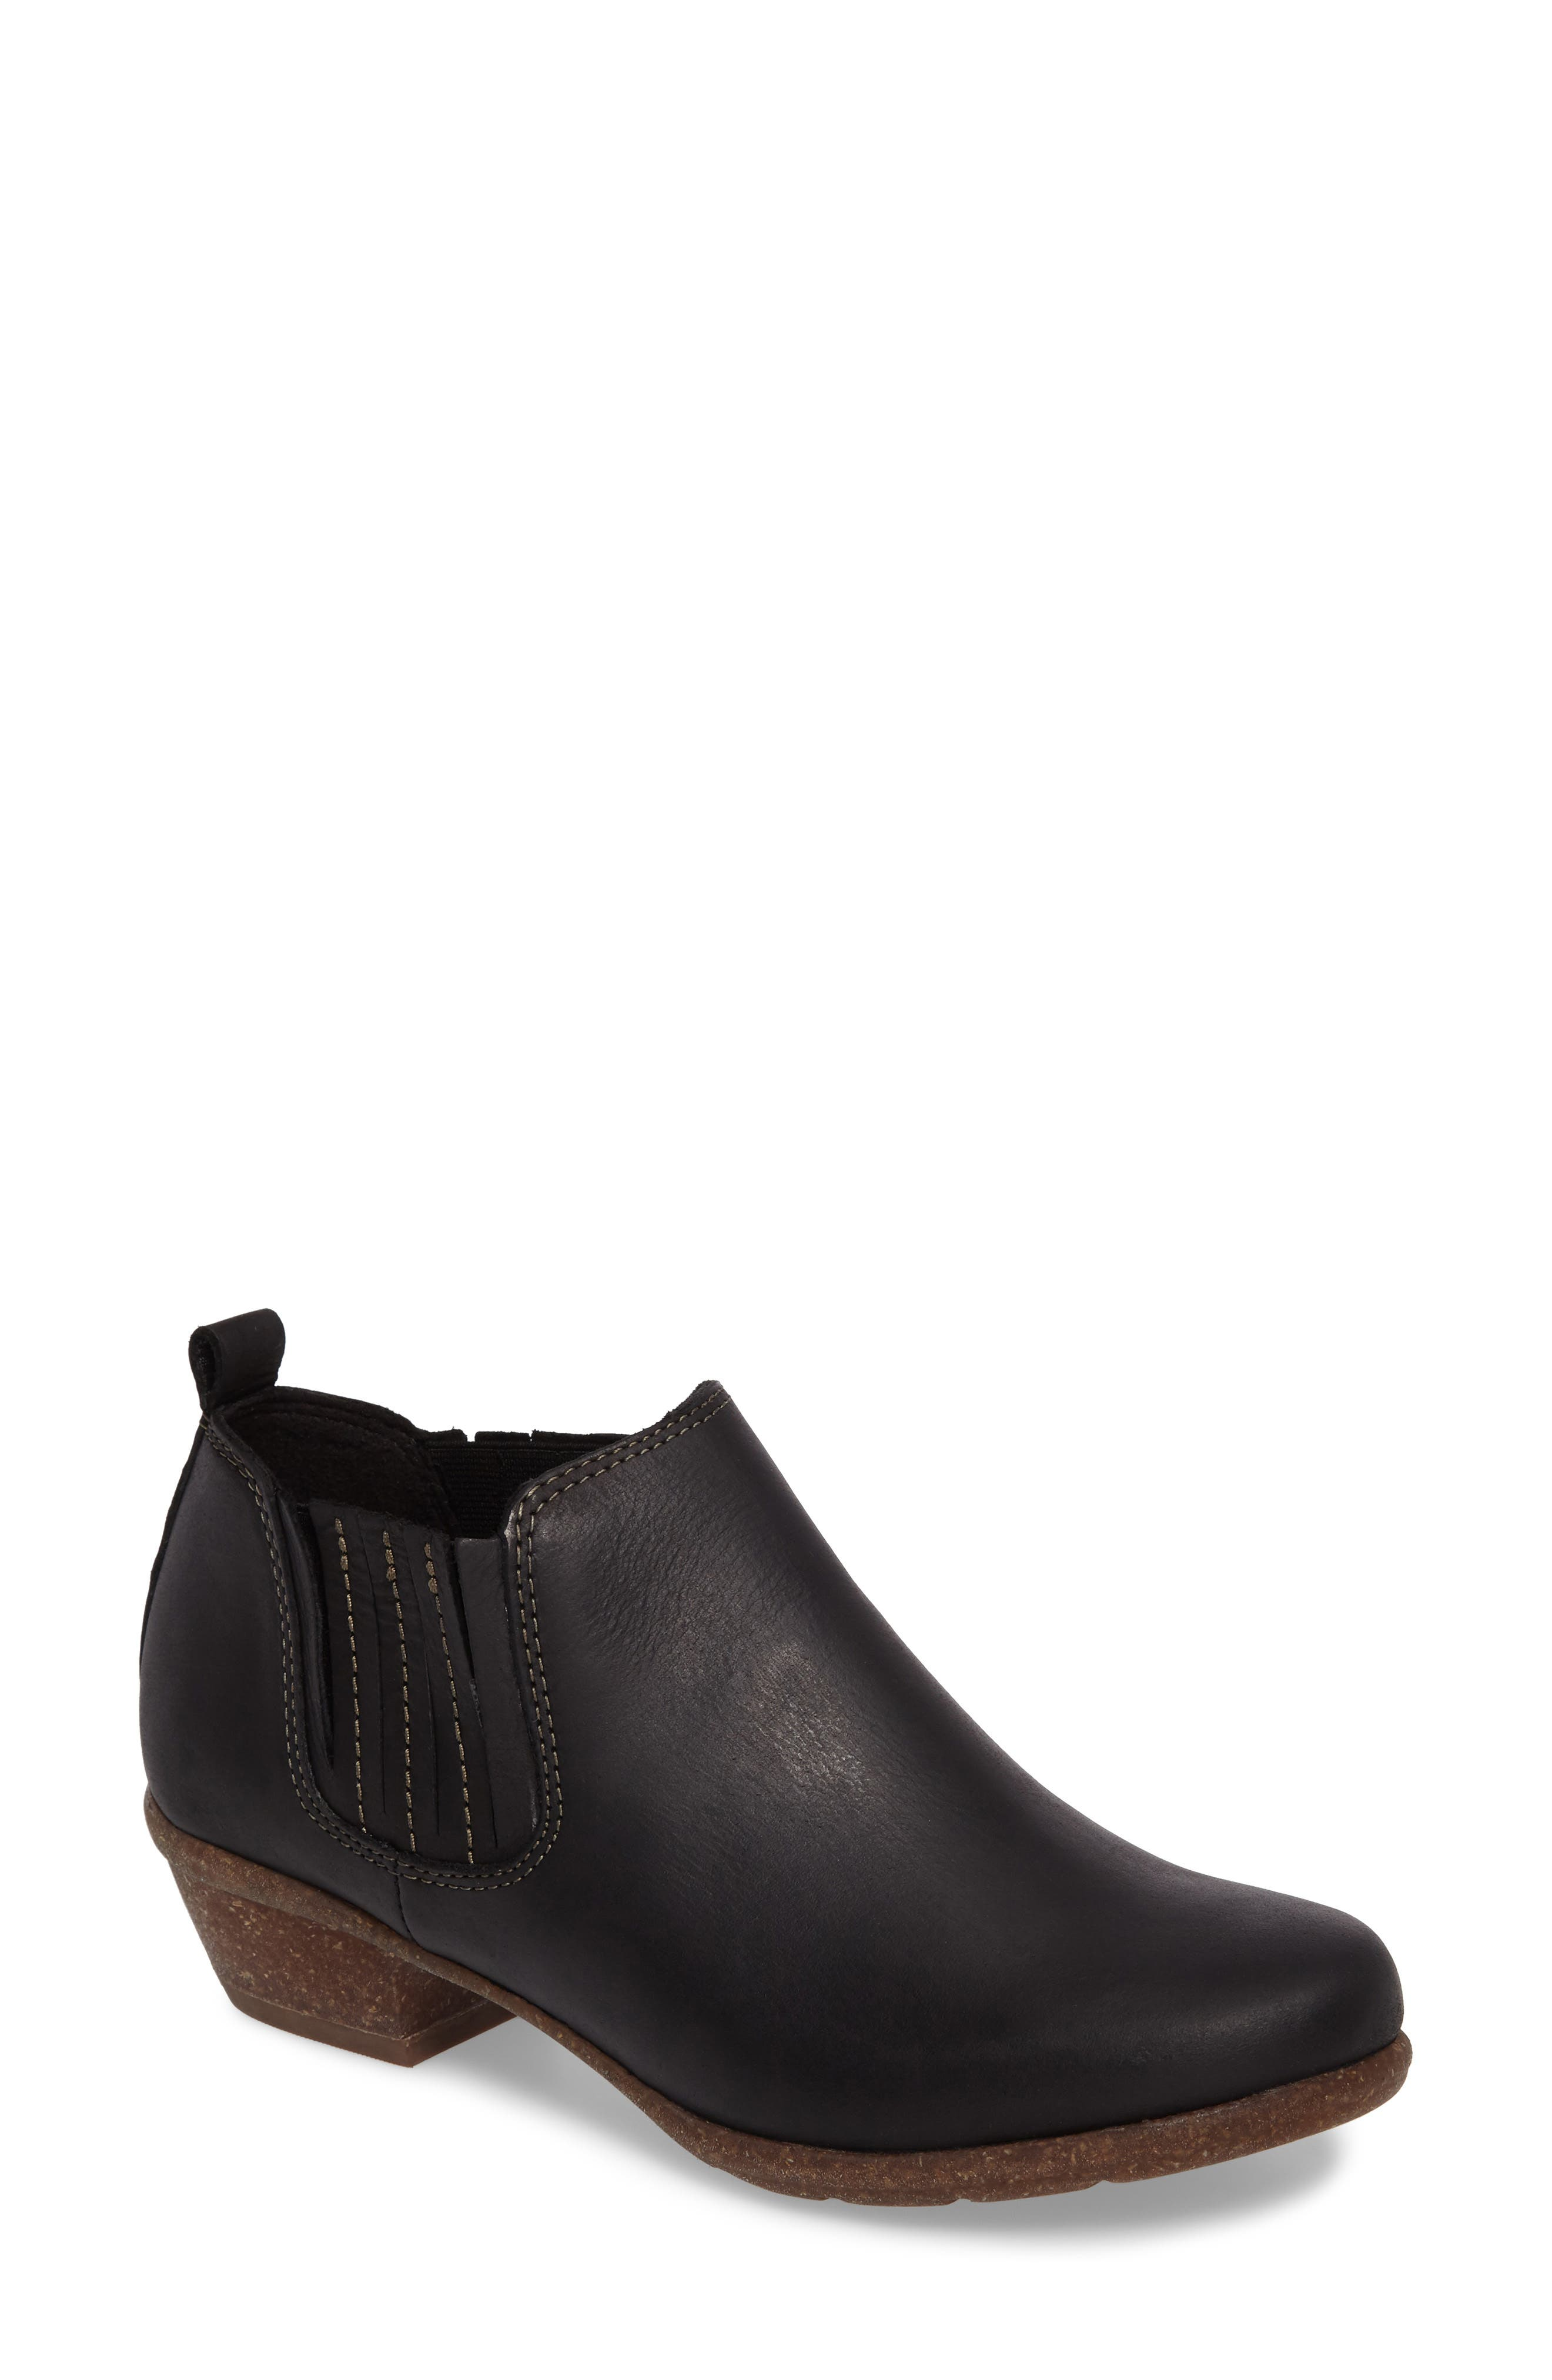 CLARKS<SUP>®</SUP> Wilrose Jade Low Chelsea Bootie, Main, color, 001